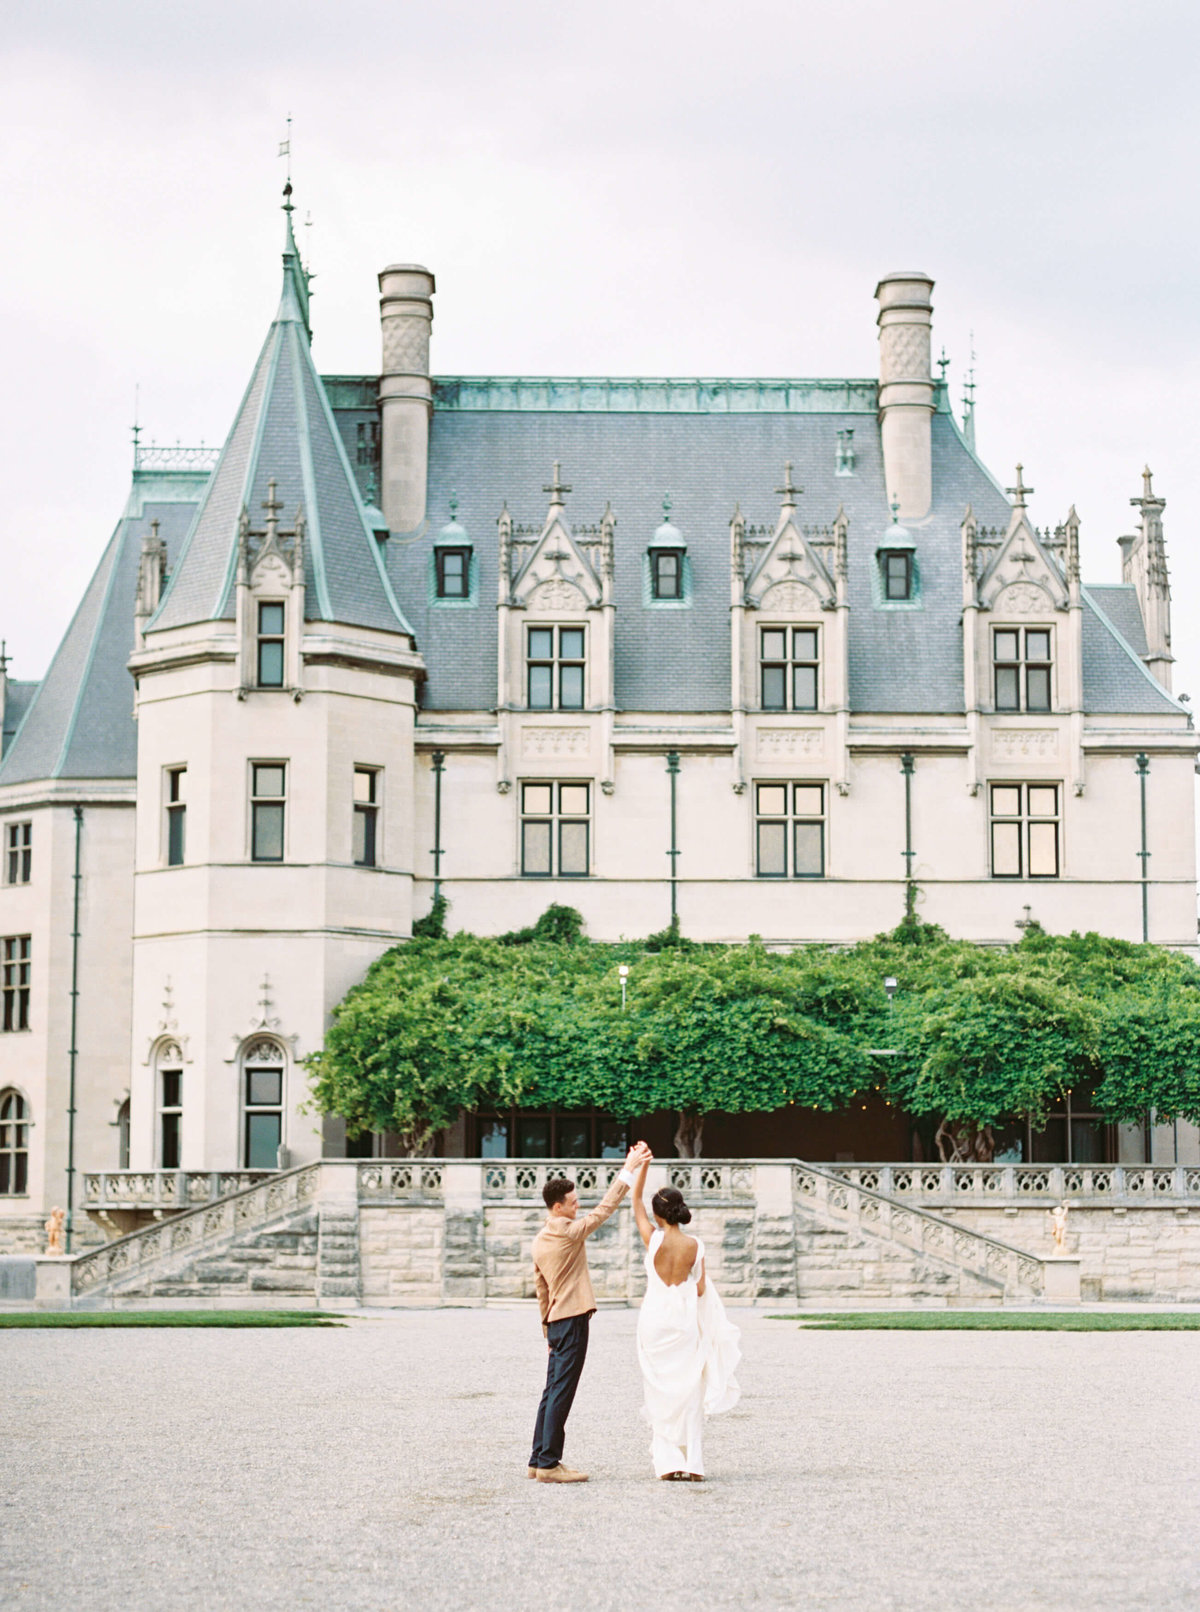 Biltmore Estate wedding photographer, Asheville Wedding Photographer, Henry Photography-39